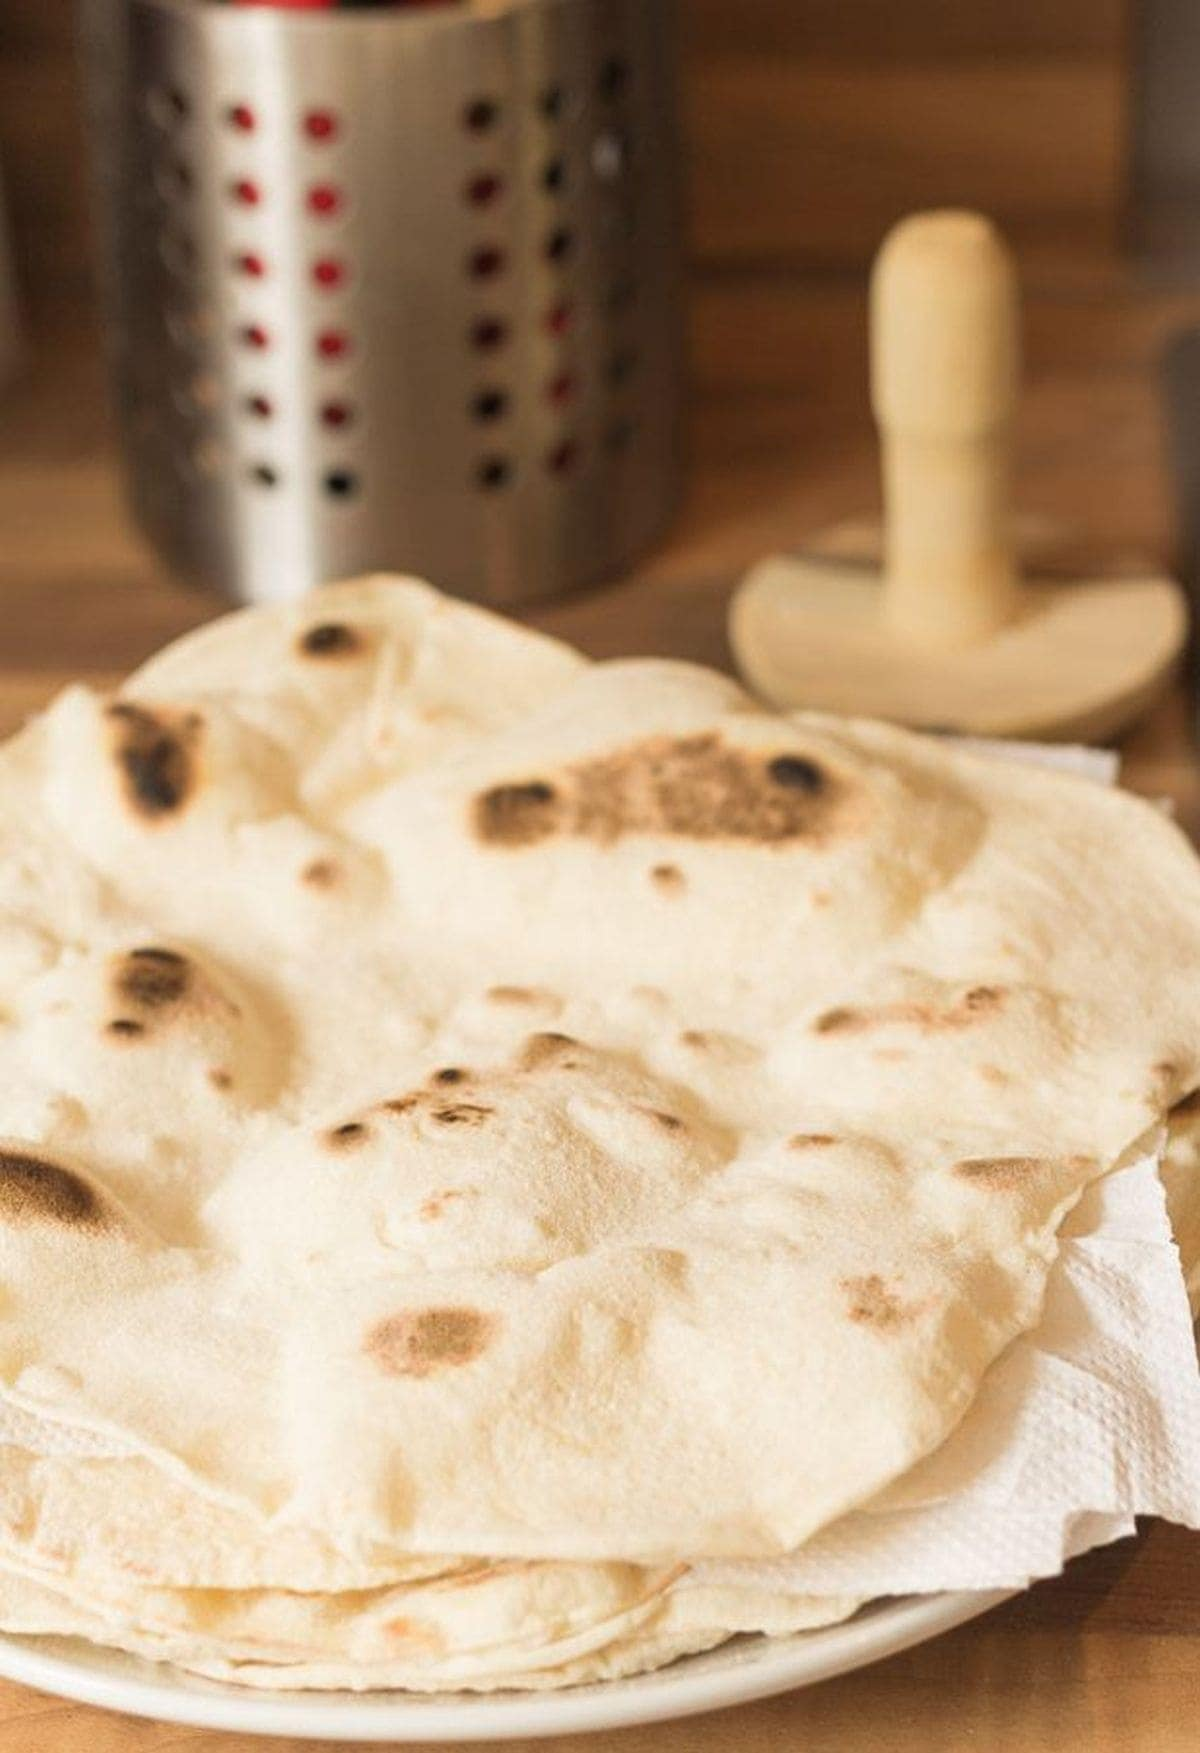 A plate of homemade naan breads seperated by kitchen roll.